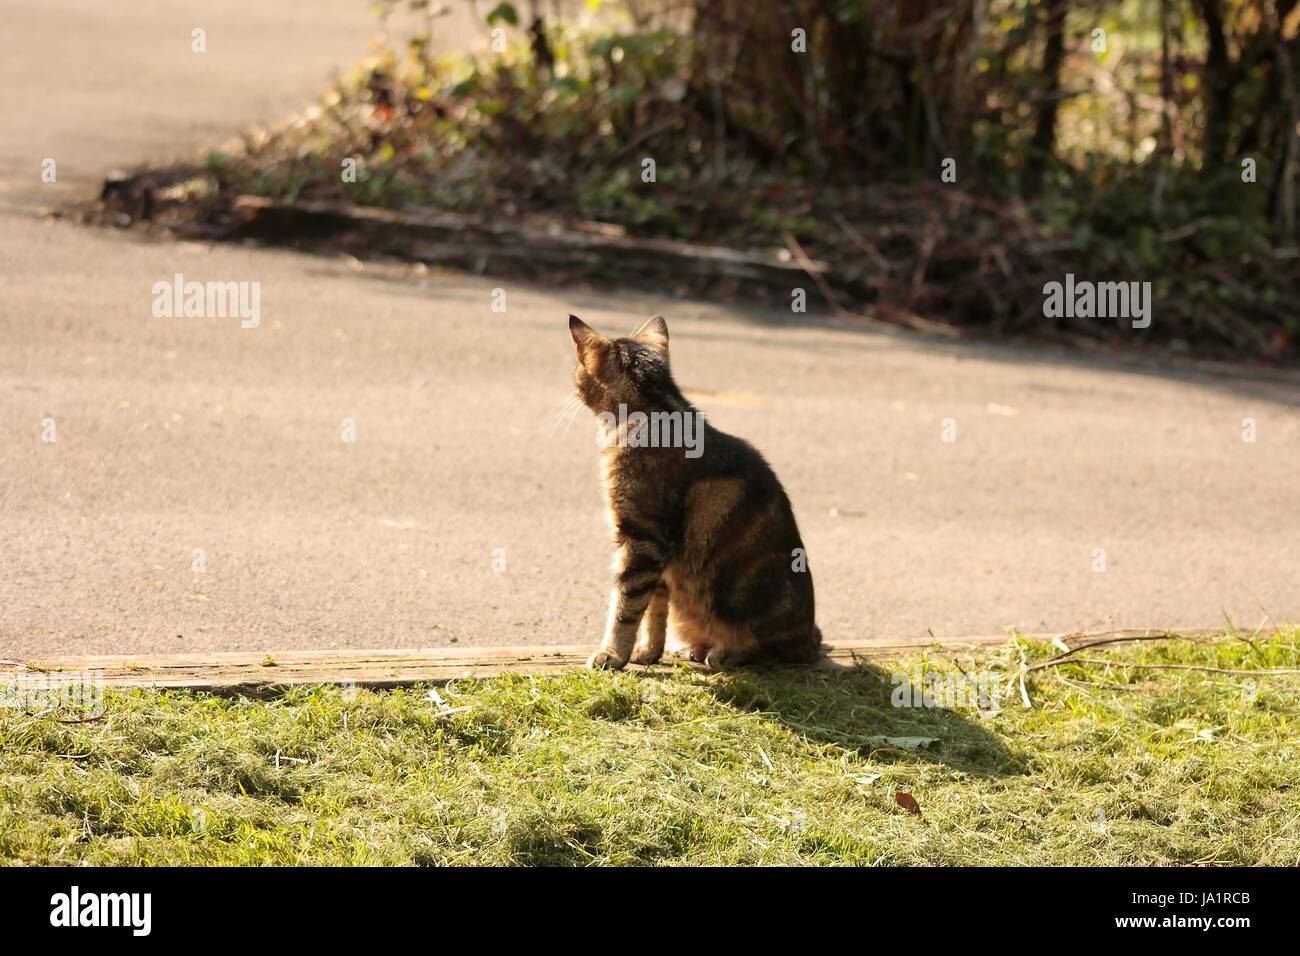 Isolated back view of a tabby cat outside in sunlight casting a shadow while sitting on the ground - Stock Image